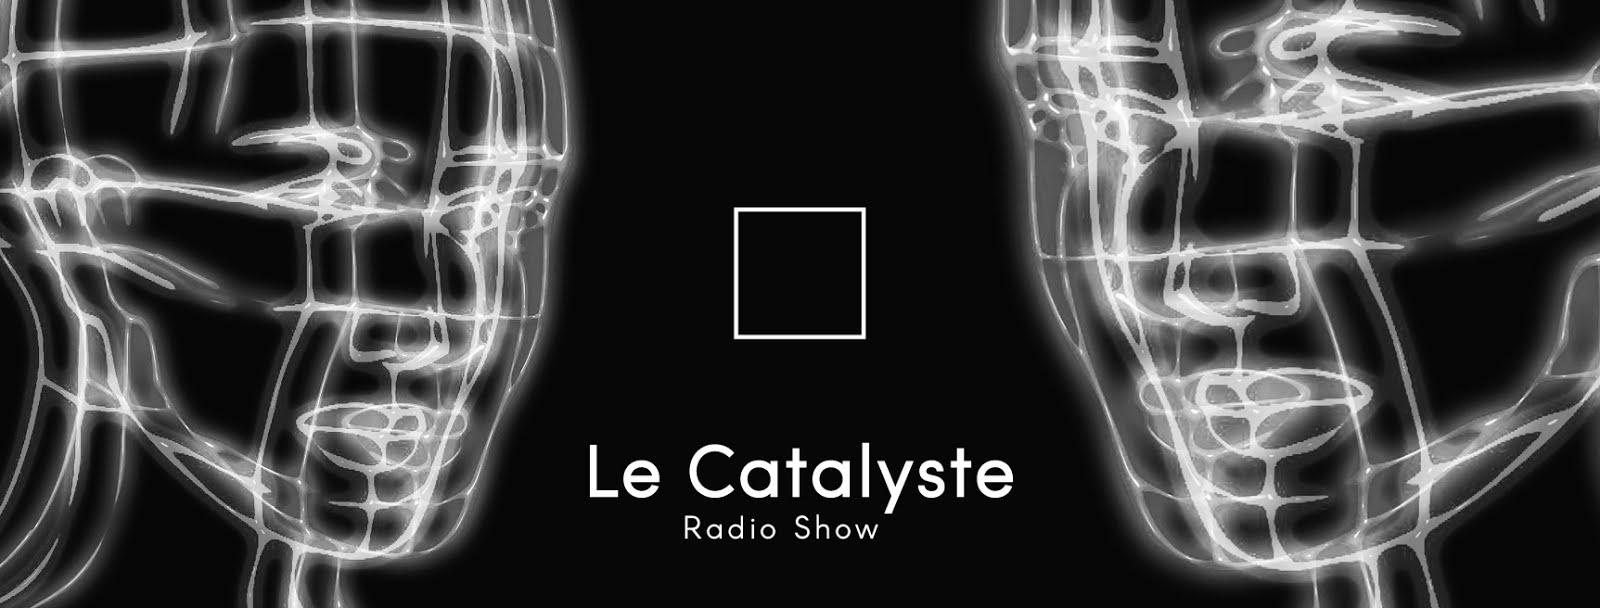 Le Catalyste (Techno/IDM radio show)